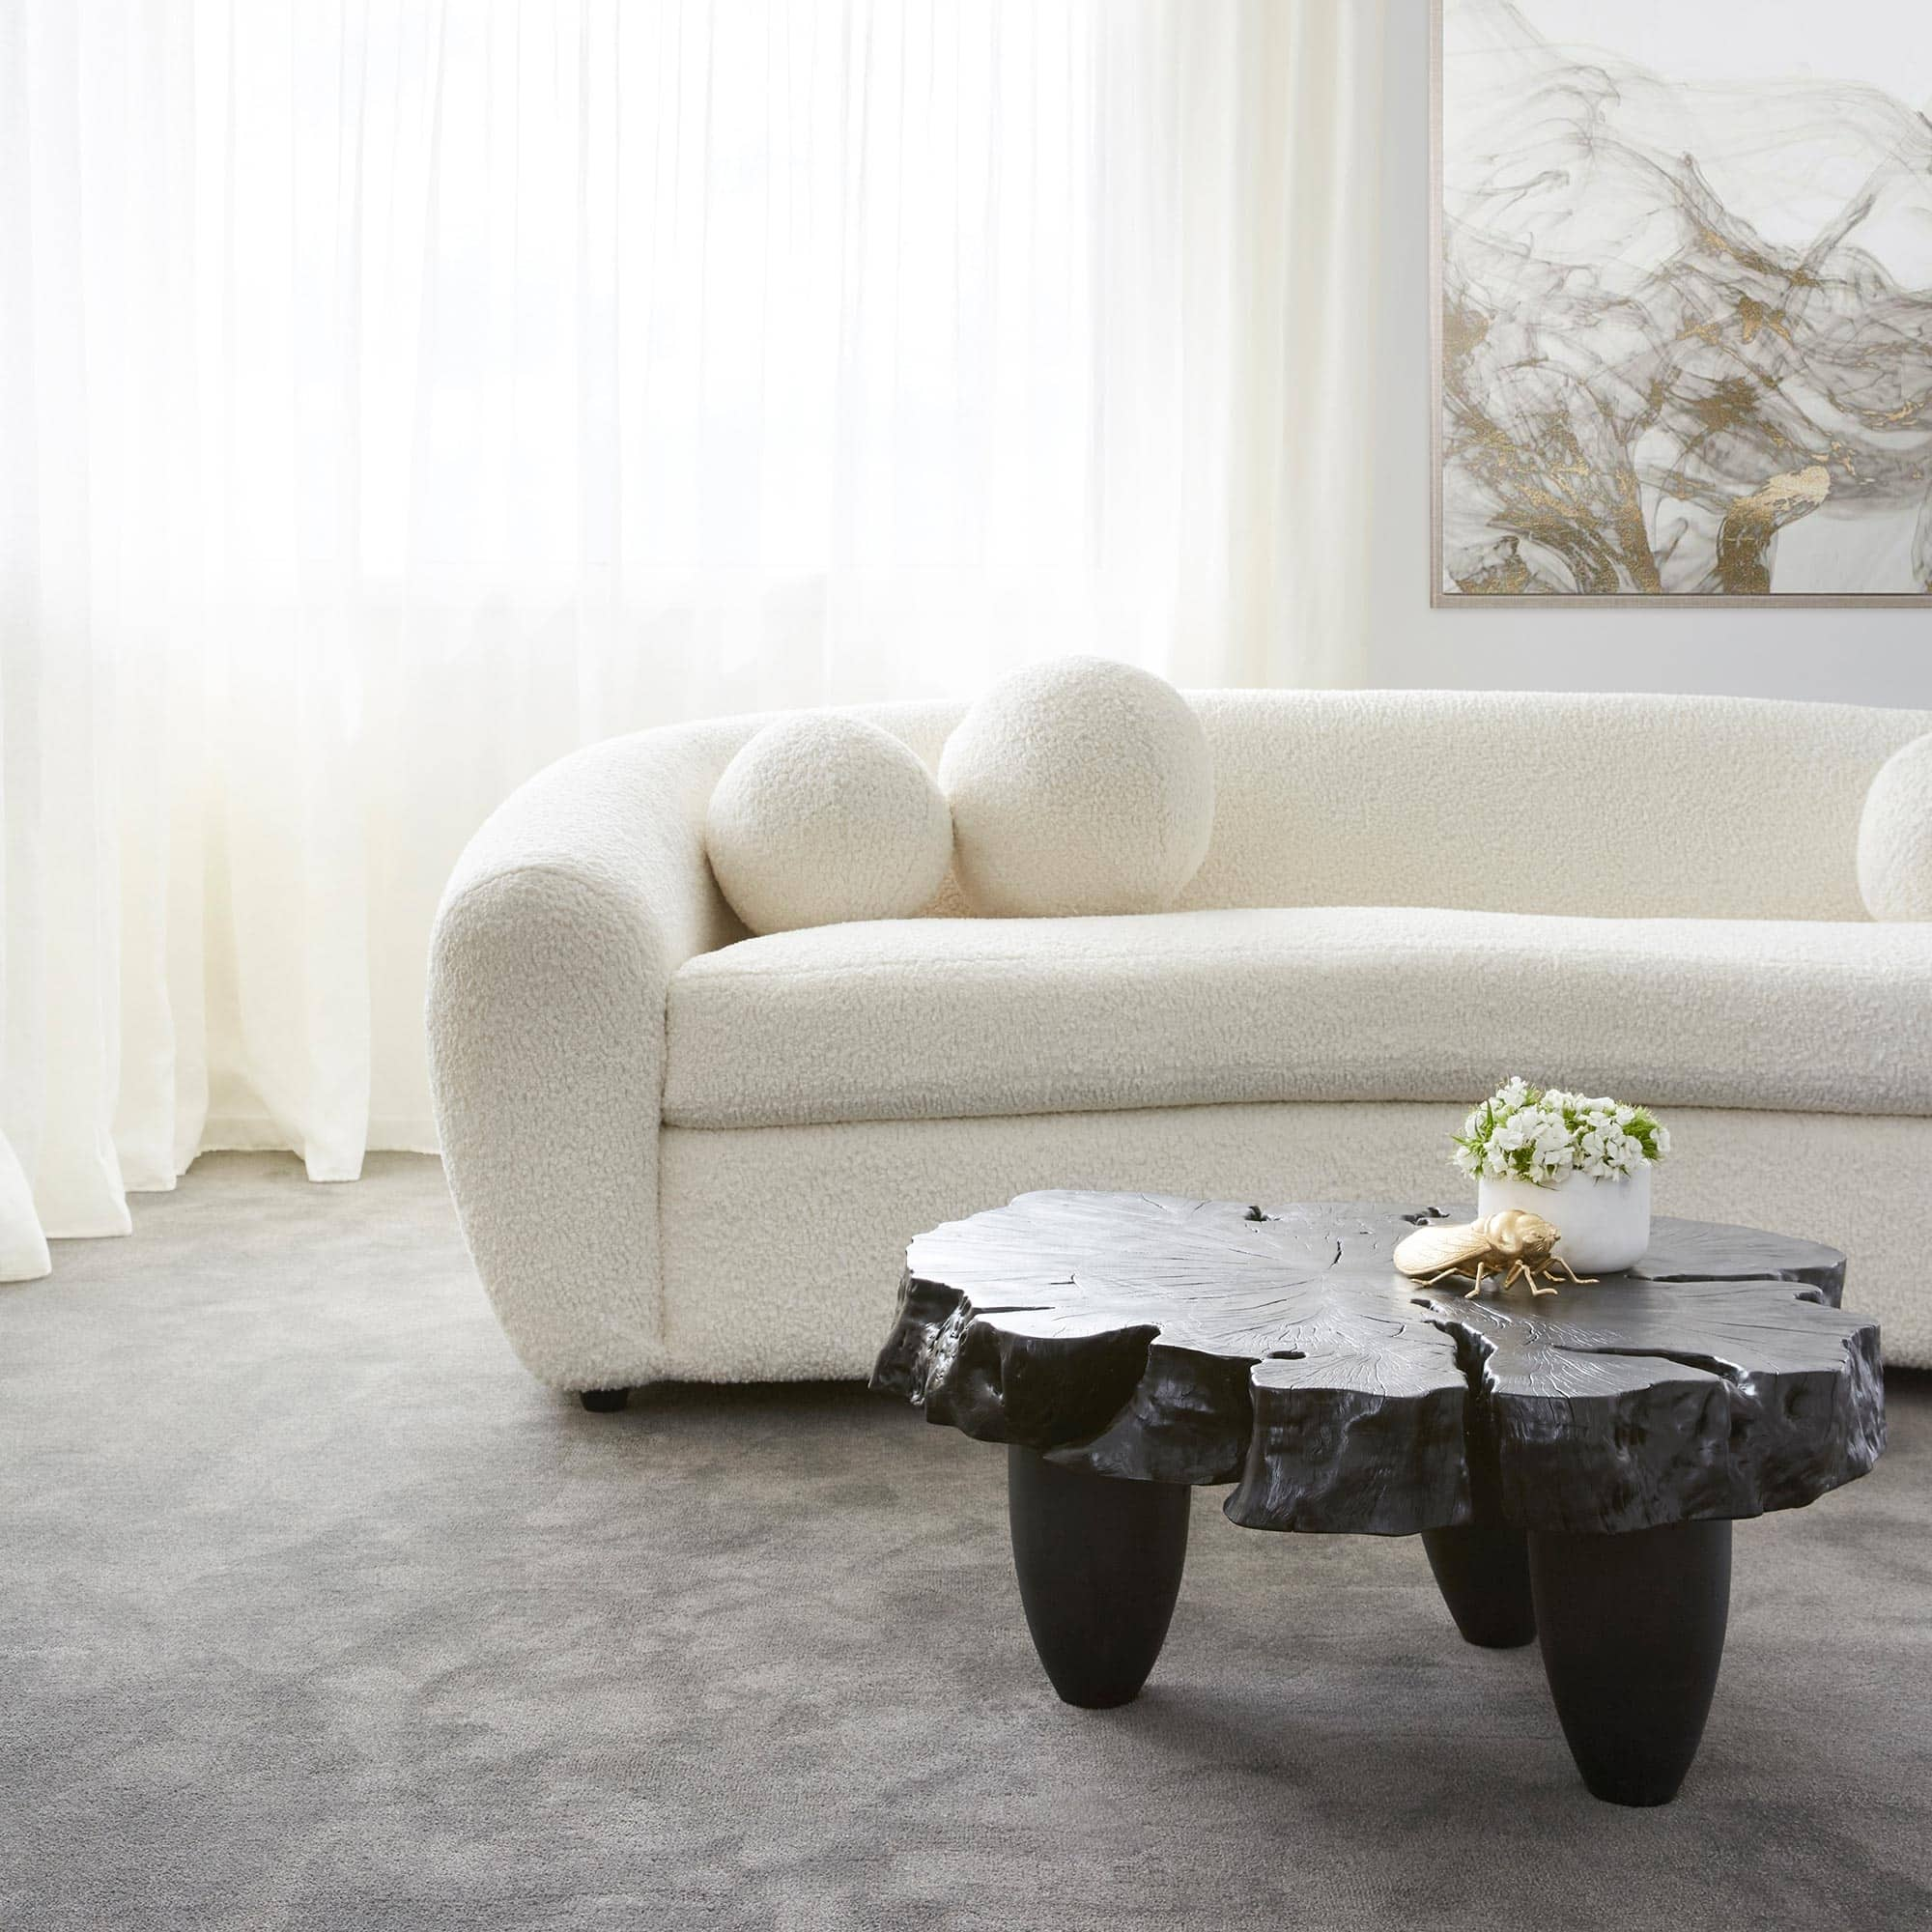 black organic coffee table coco republic white boucle sofa luxe living room